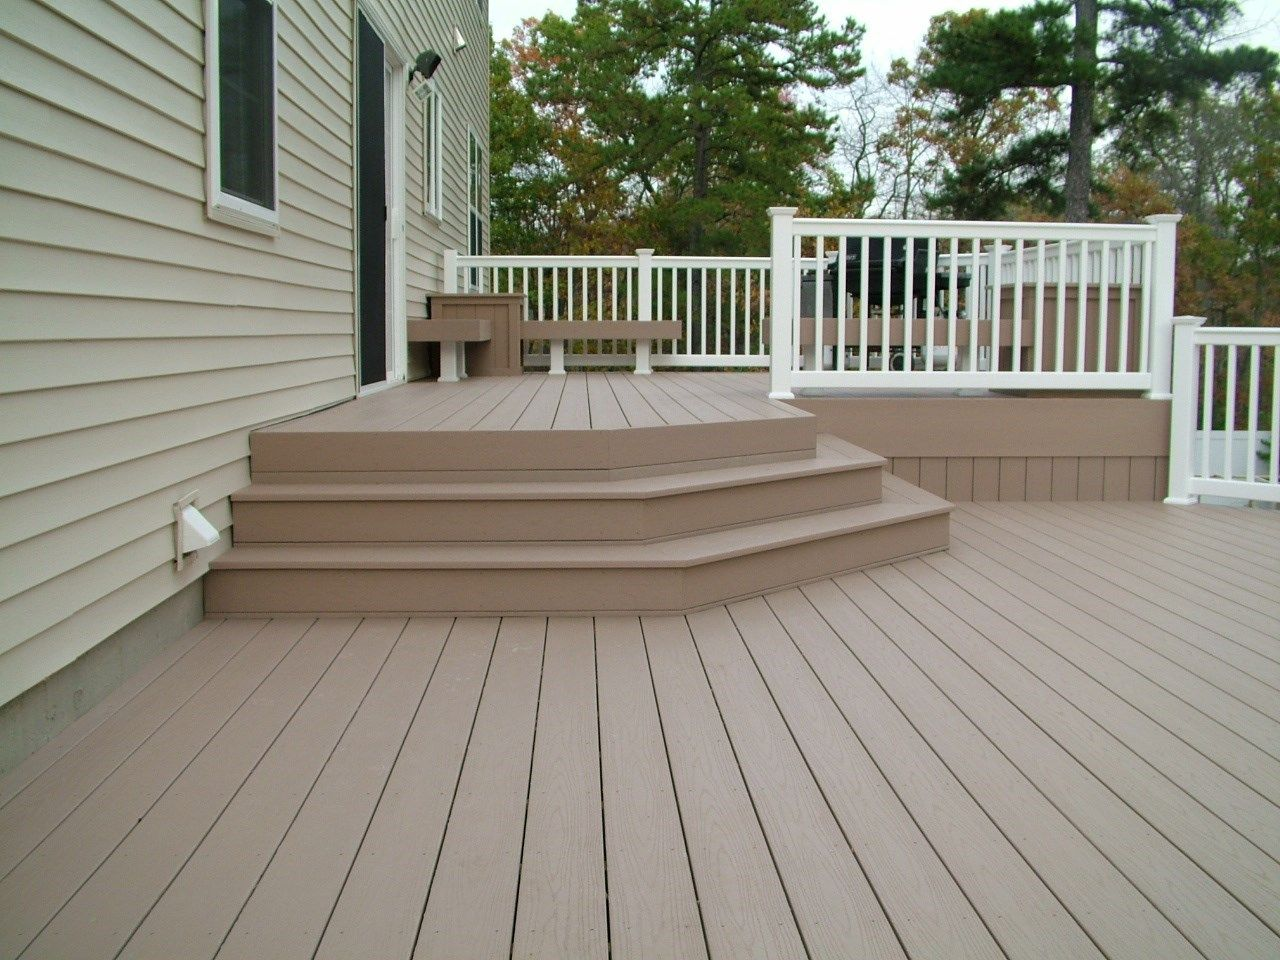 Custom Deck in Marlboro N.J. - Picture 3388